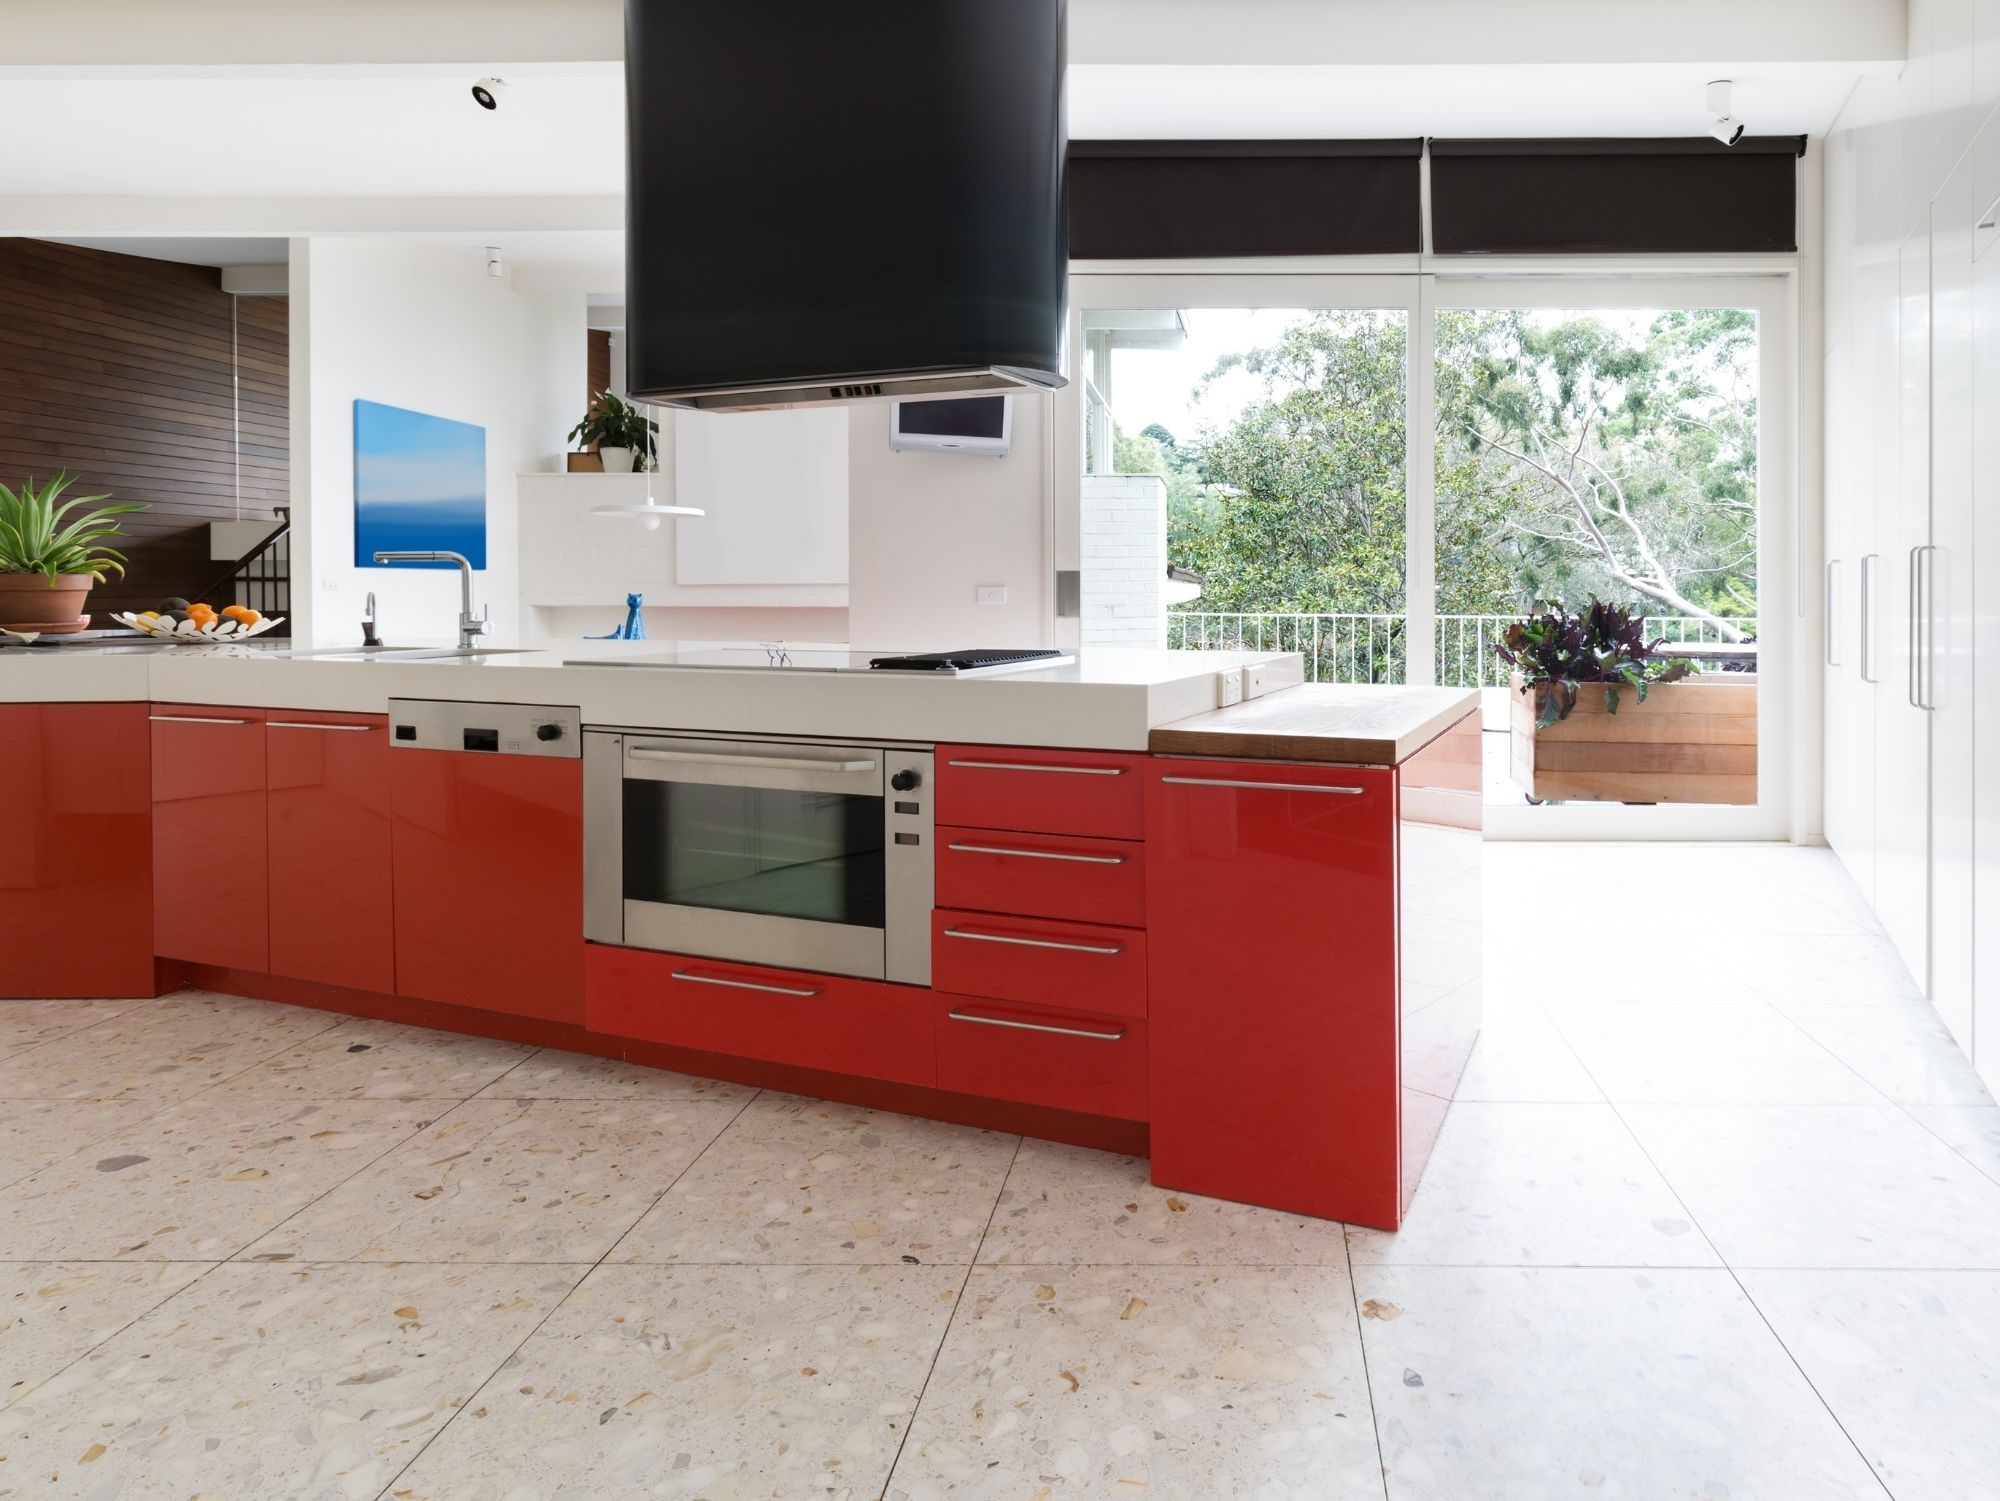 Modern kitchen layout with red and white styling